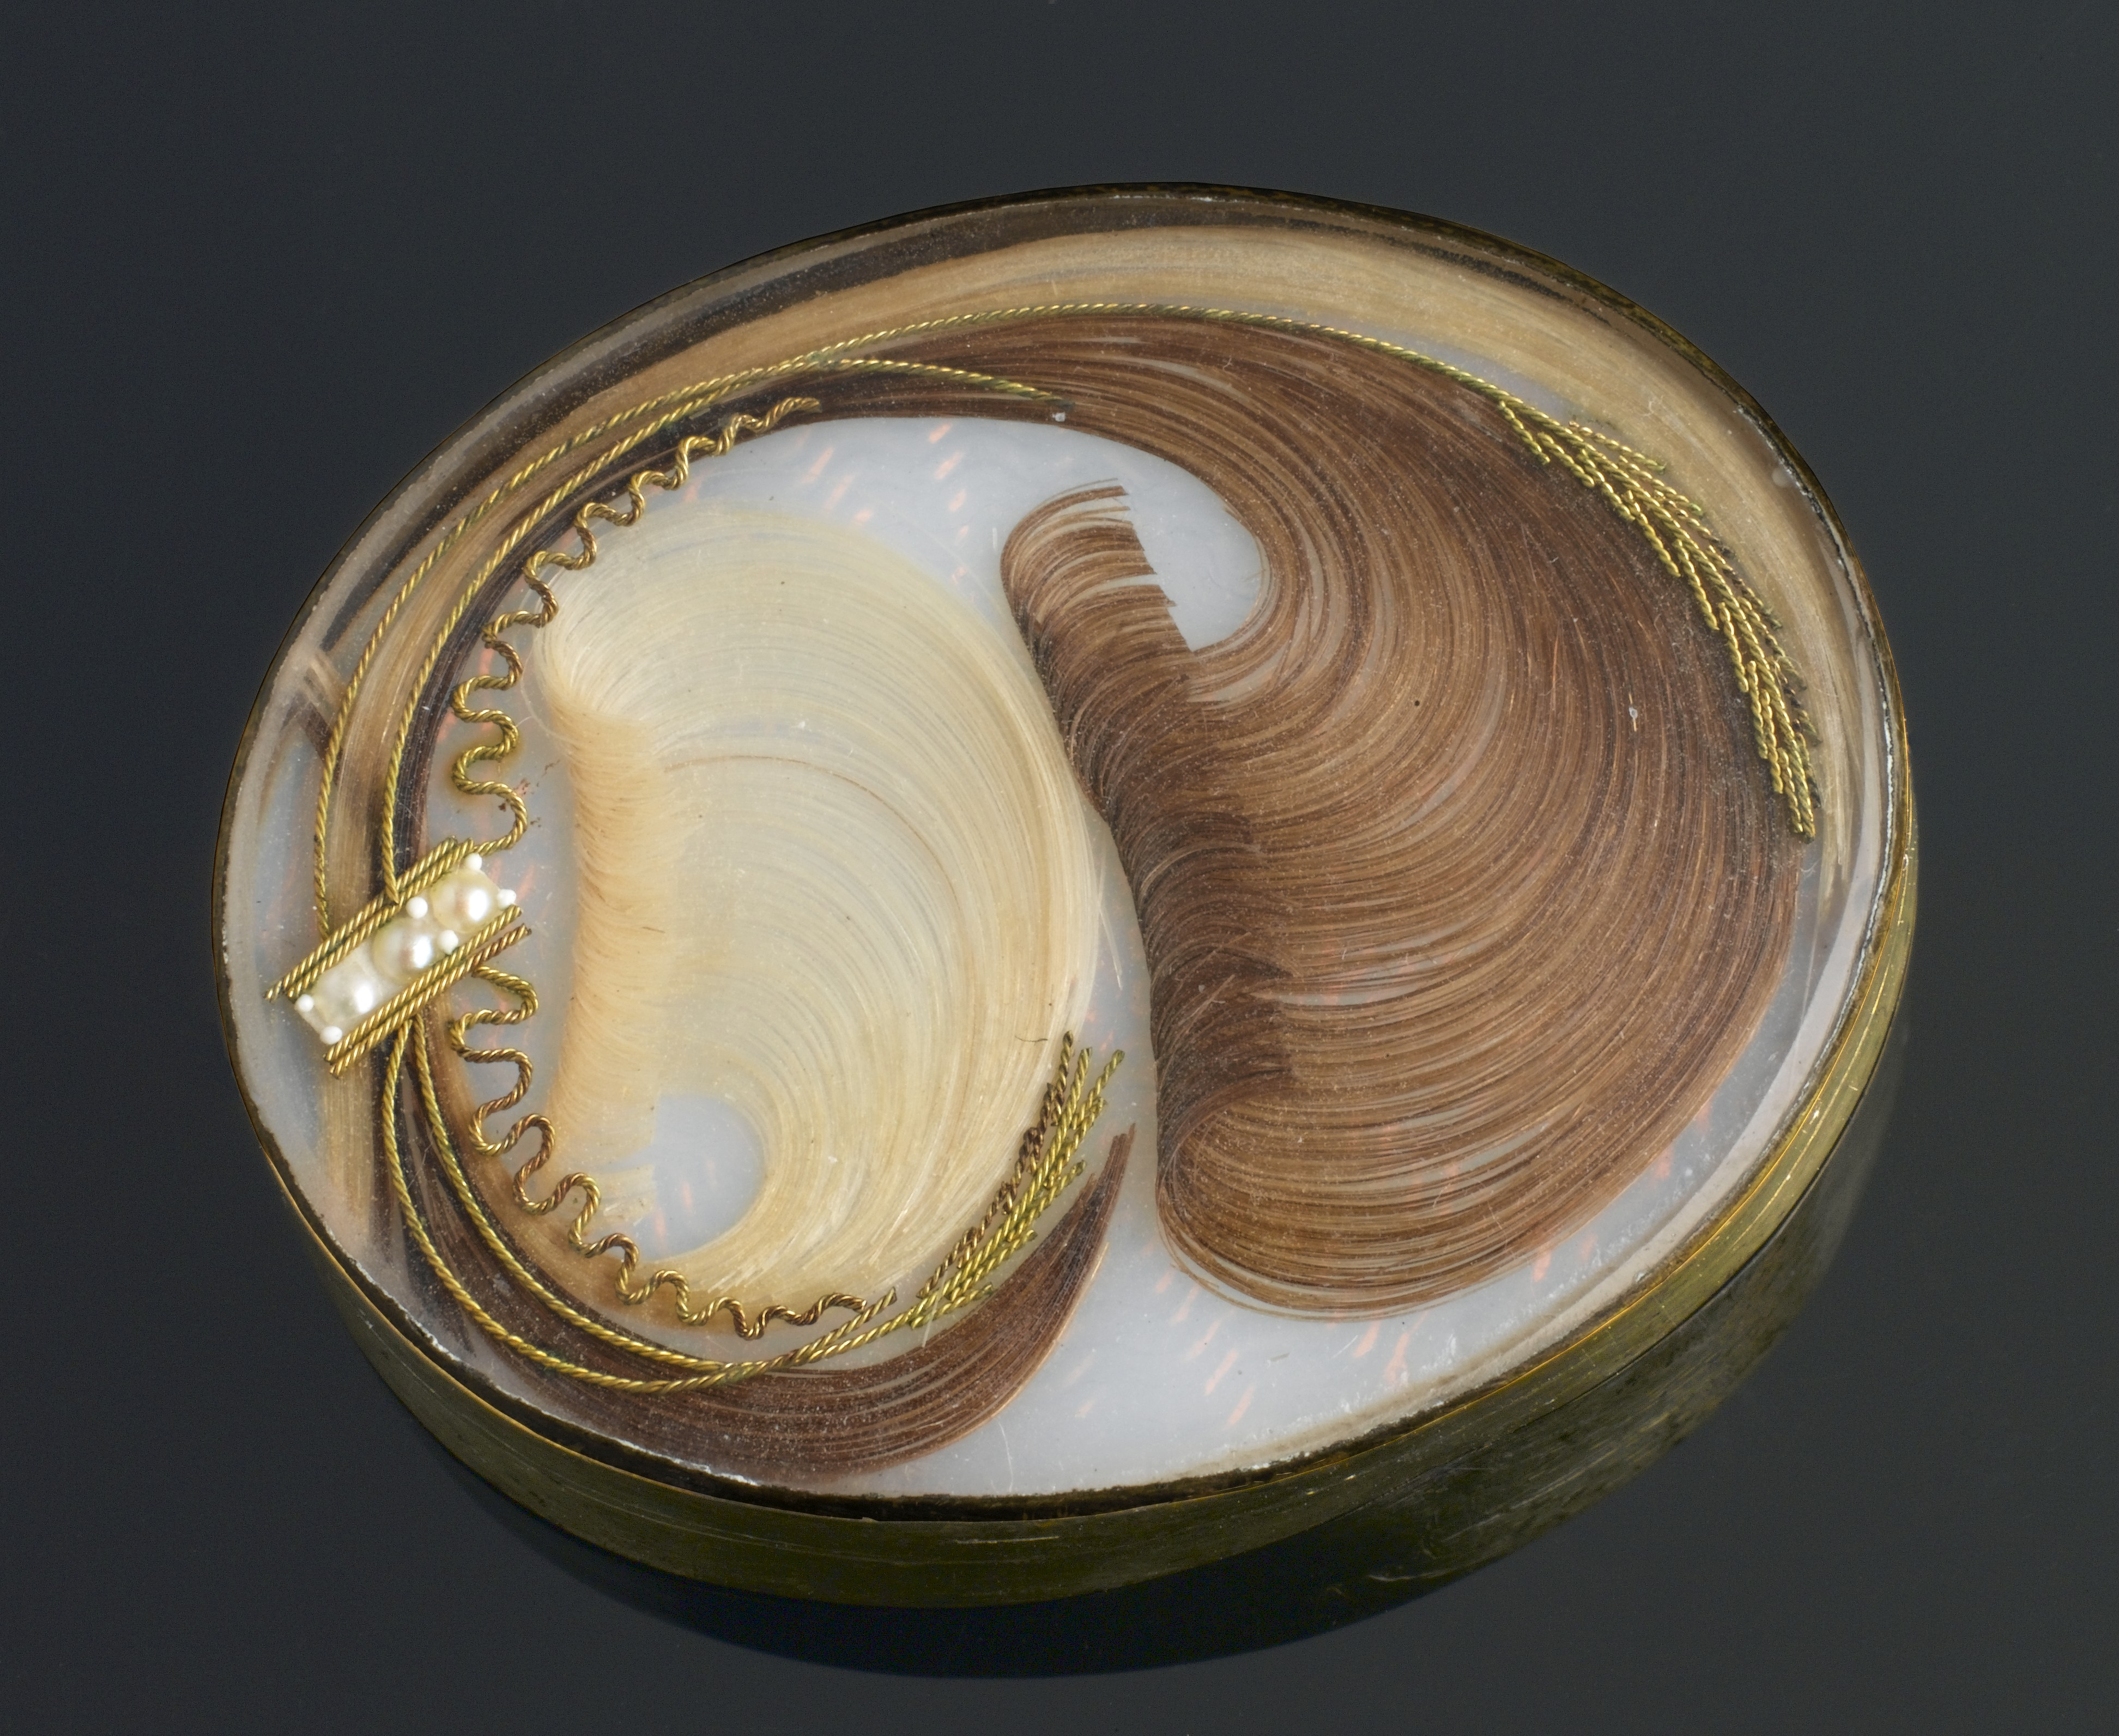 File:Brooch containing human hair, Europe, 1701-1900 Wellcome L0058632.jpg